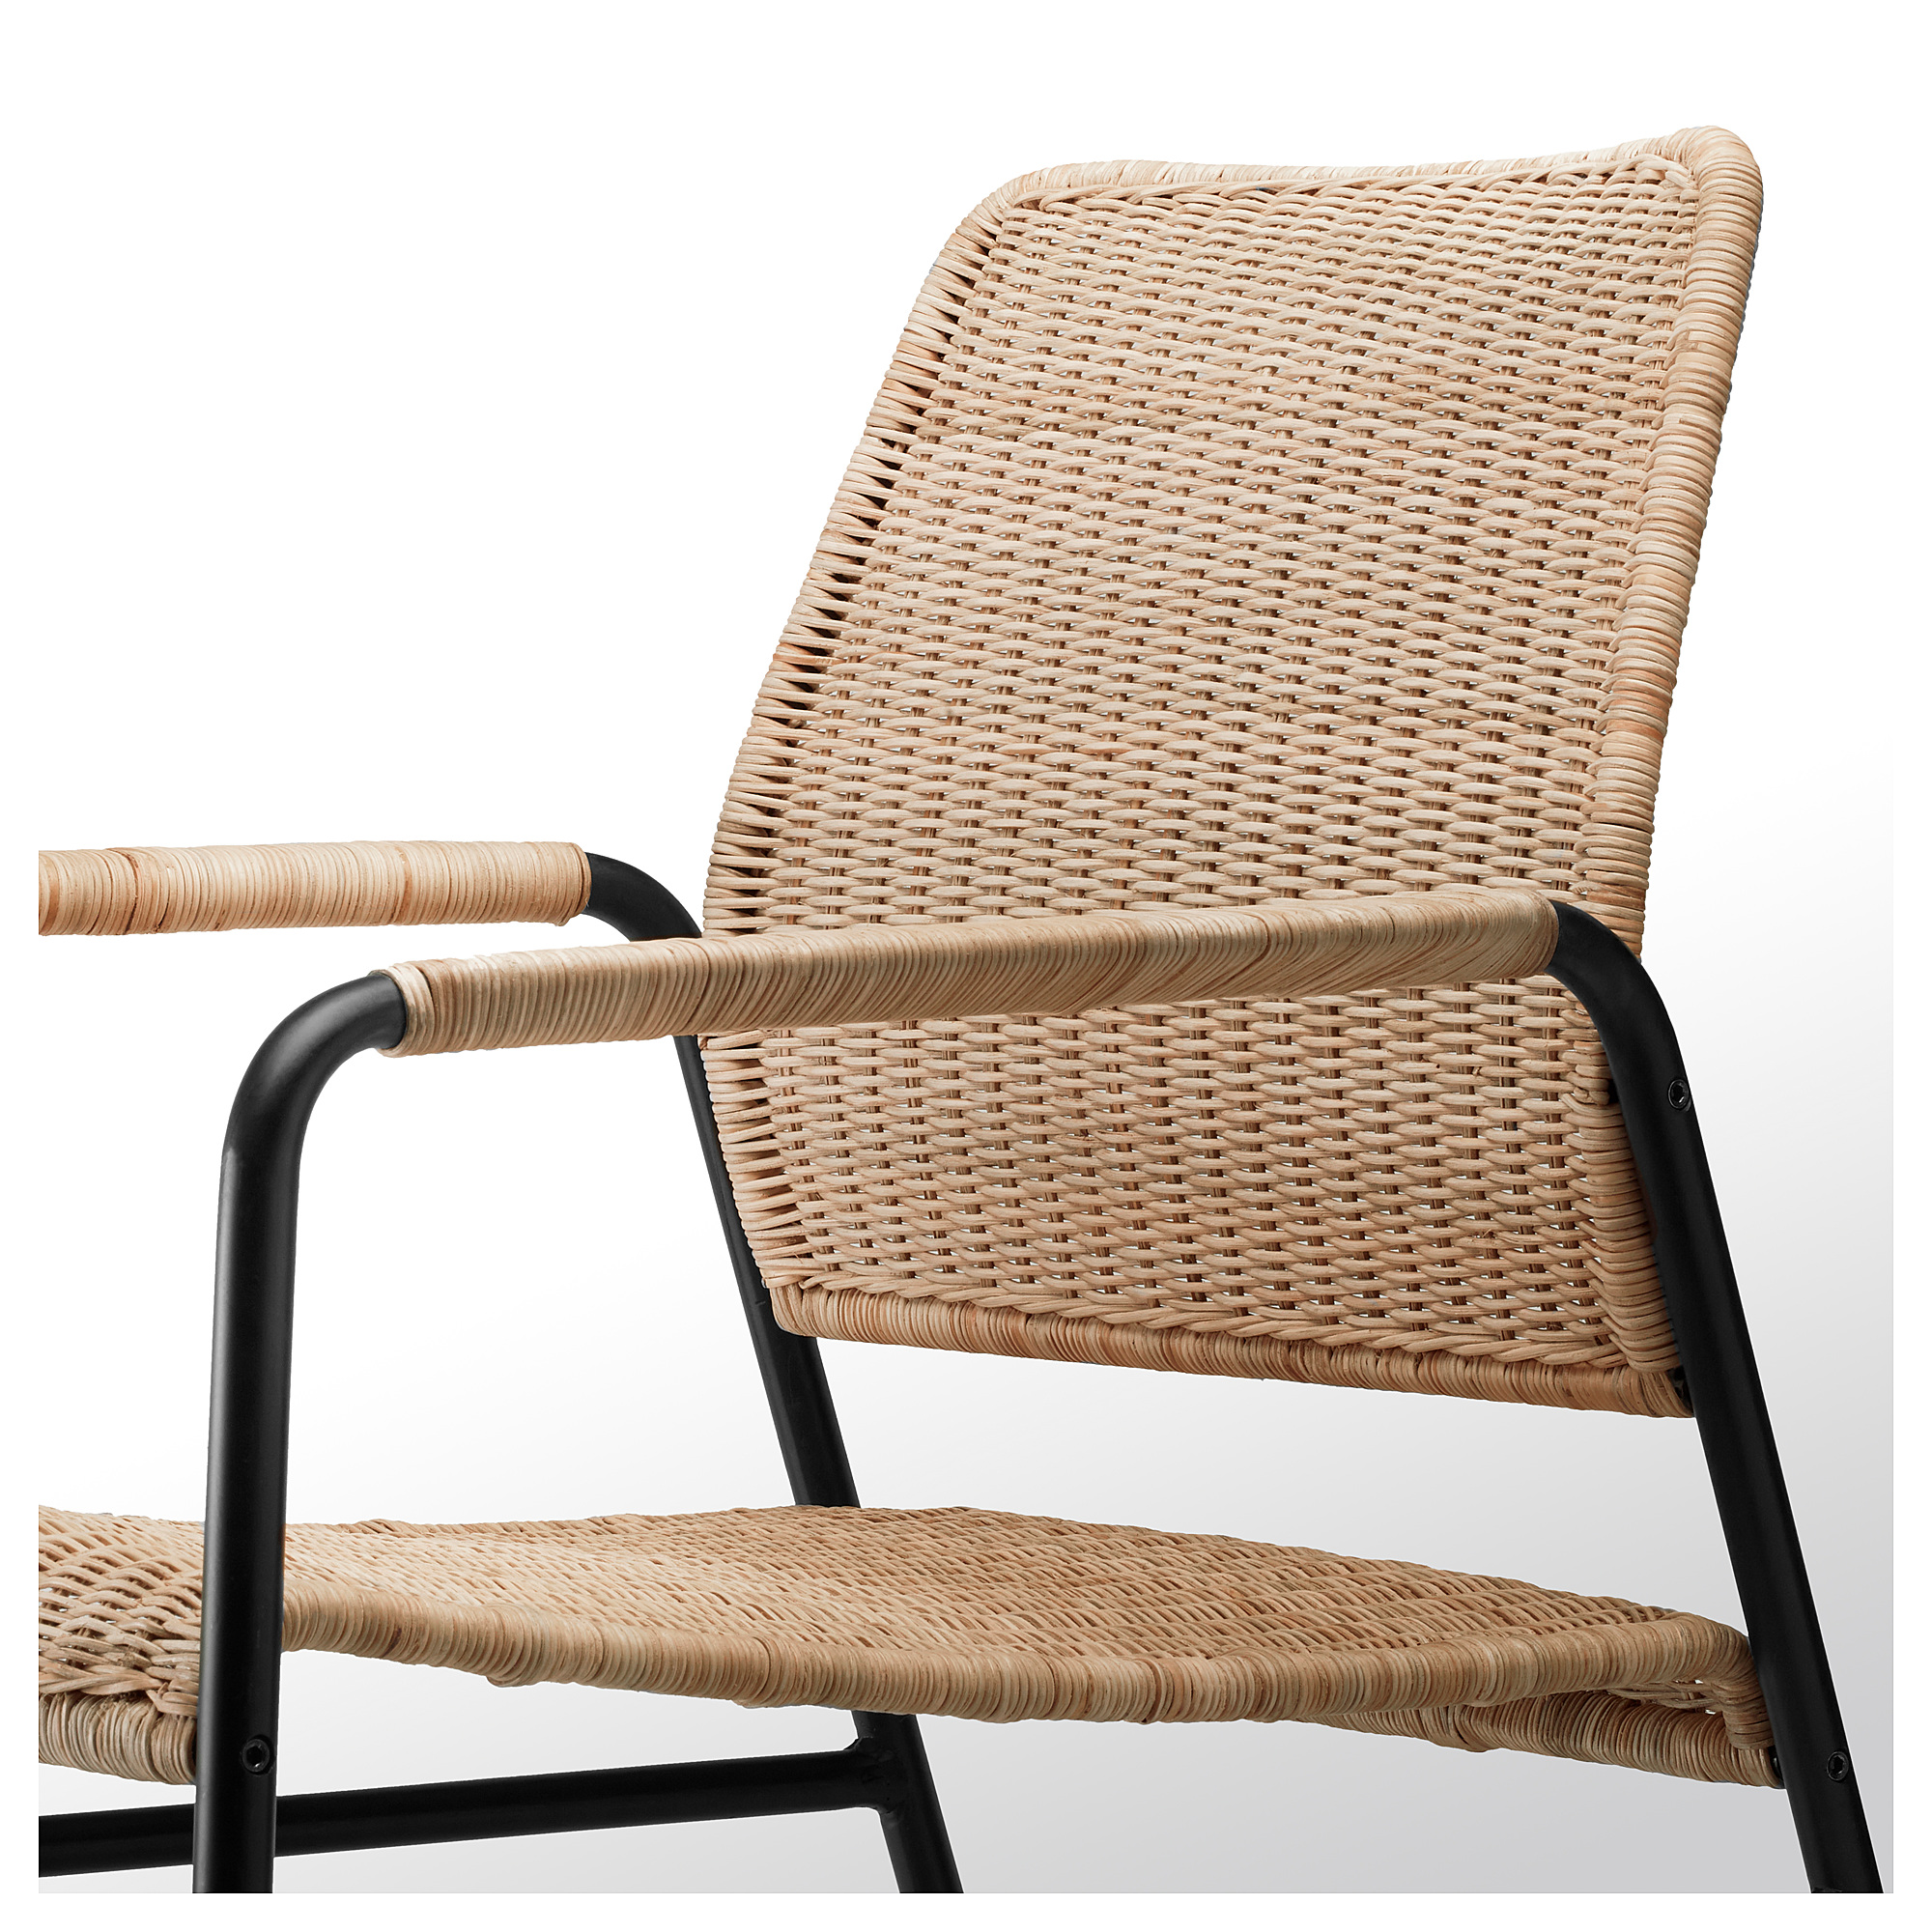 Ulriksberg Armchair Rattan Anthracite Ikea Hong Kong And Macau